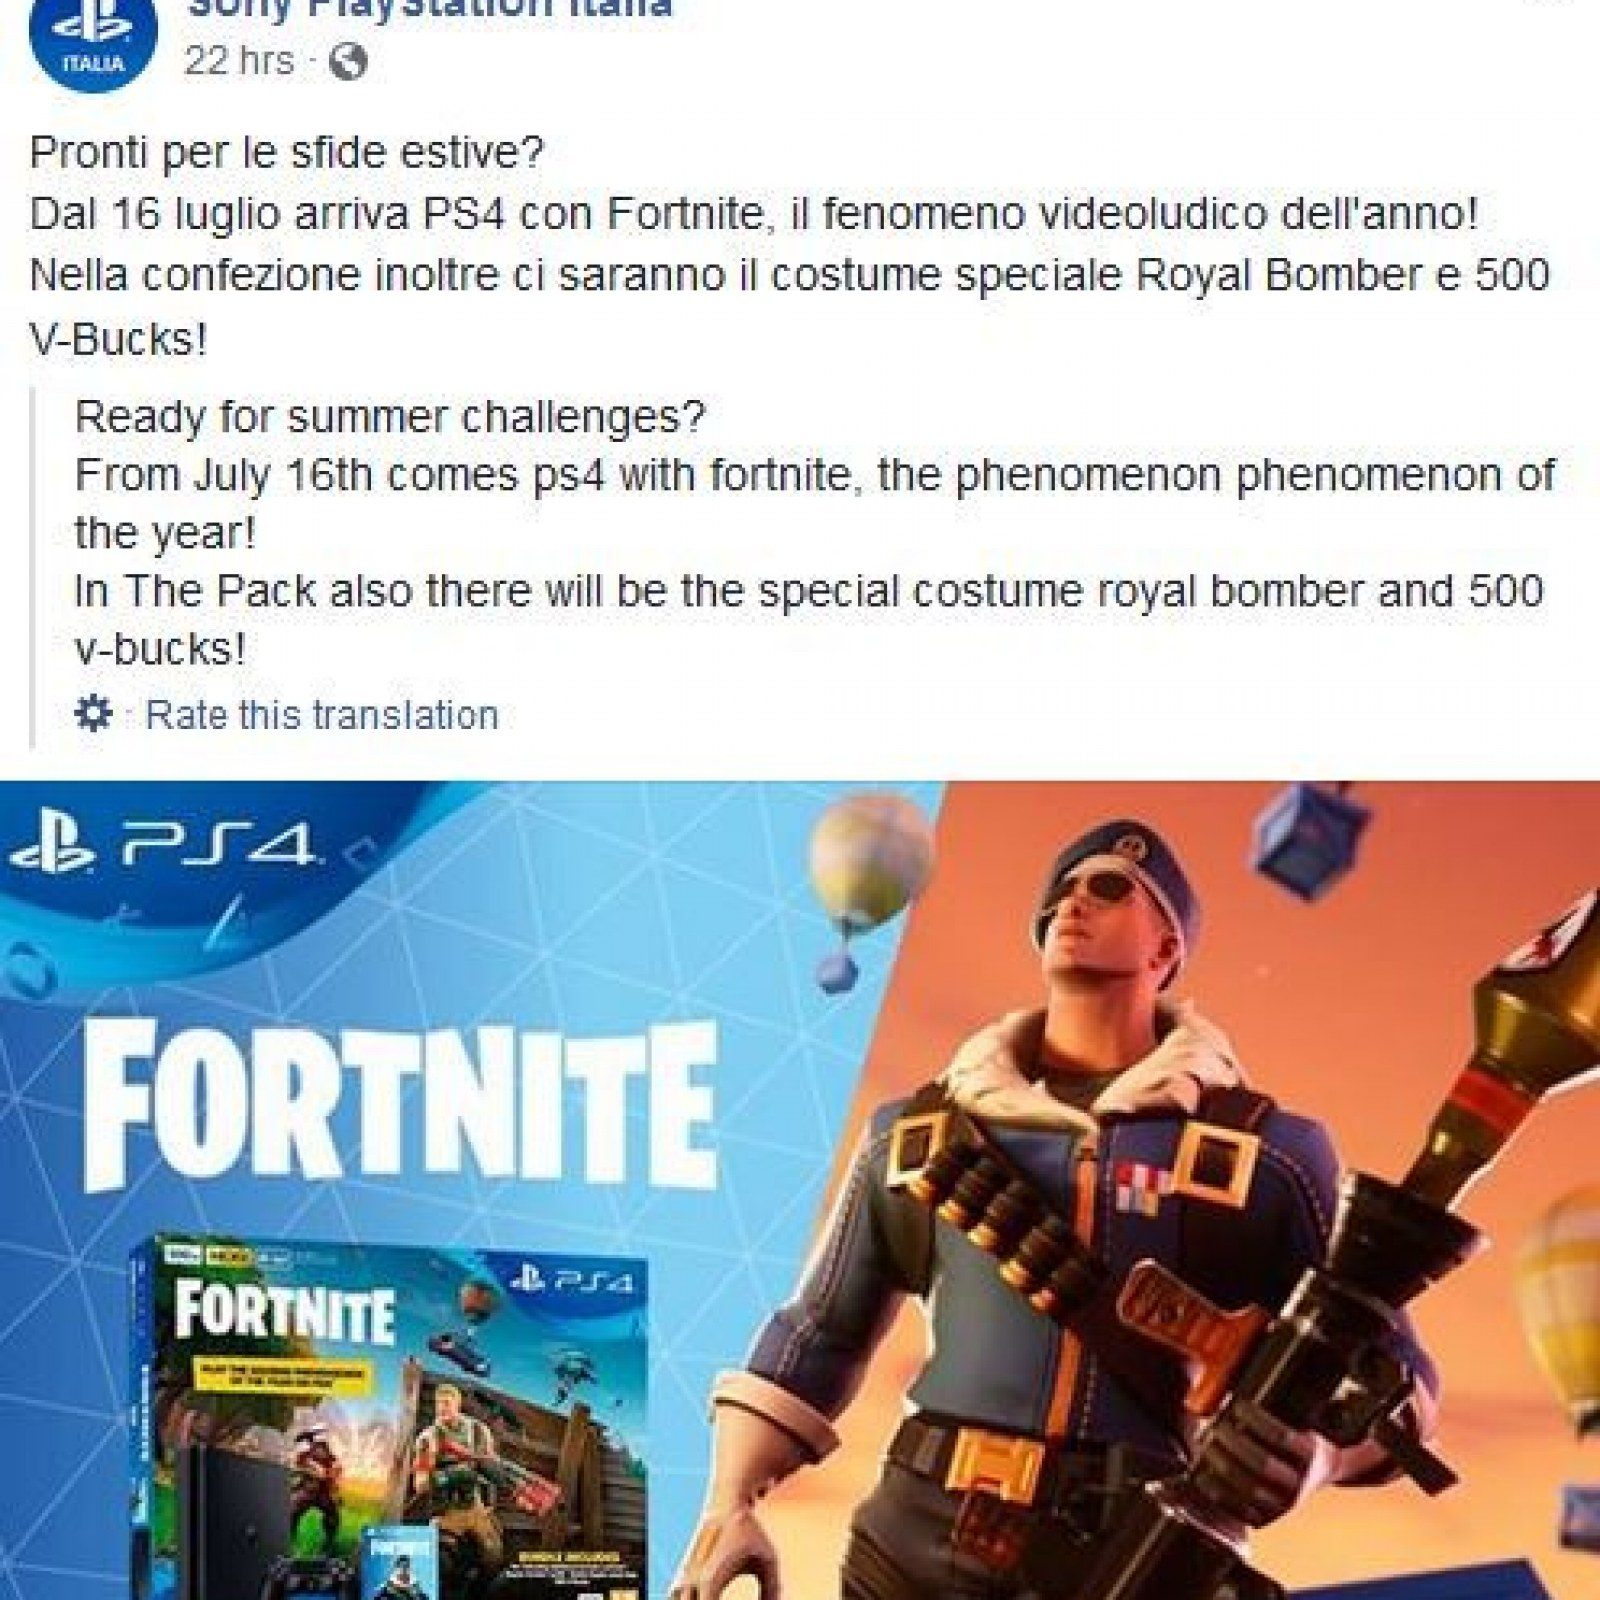 Fortnite' PS4 Bundle Leaks - Includes 500 V-Bucks & Royale Bomber Skin